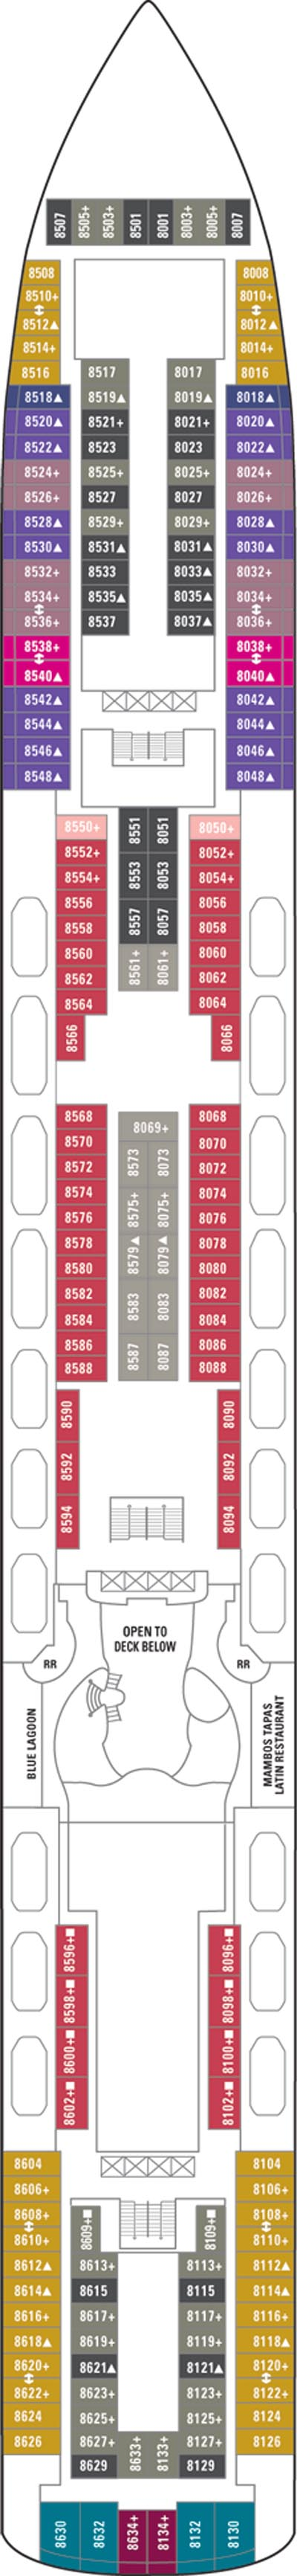 Norwegian Pearl Deck 8 layout